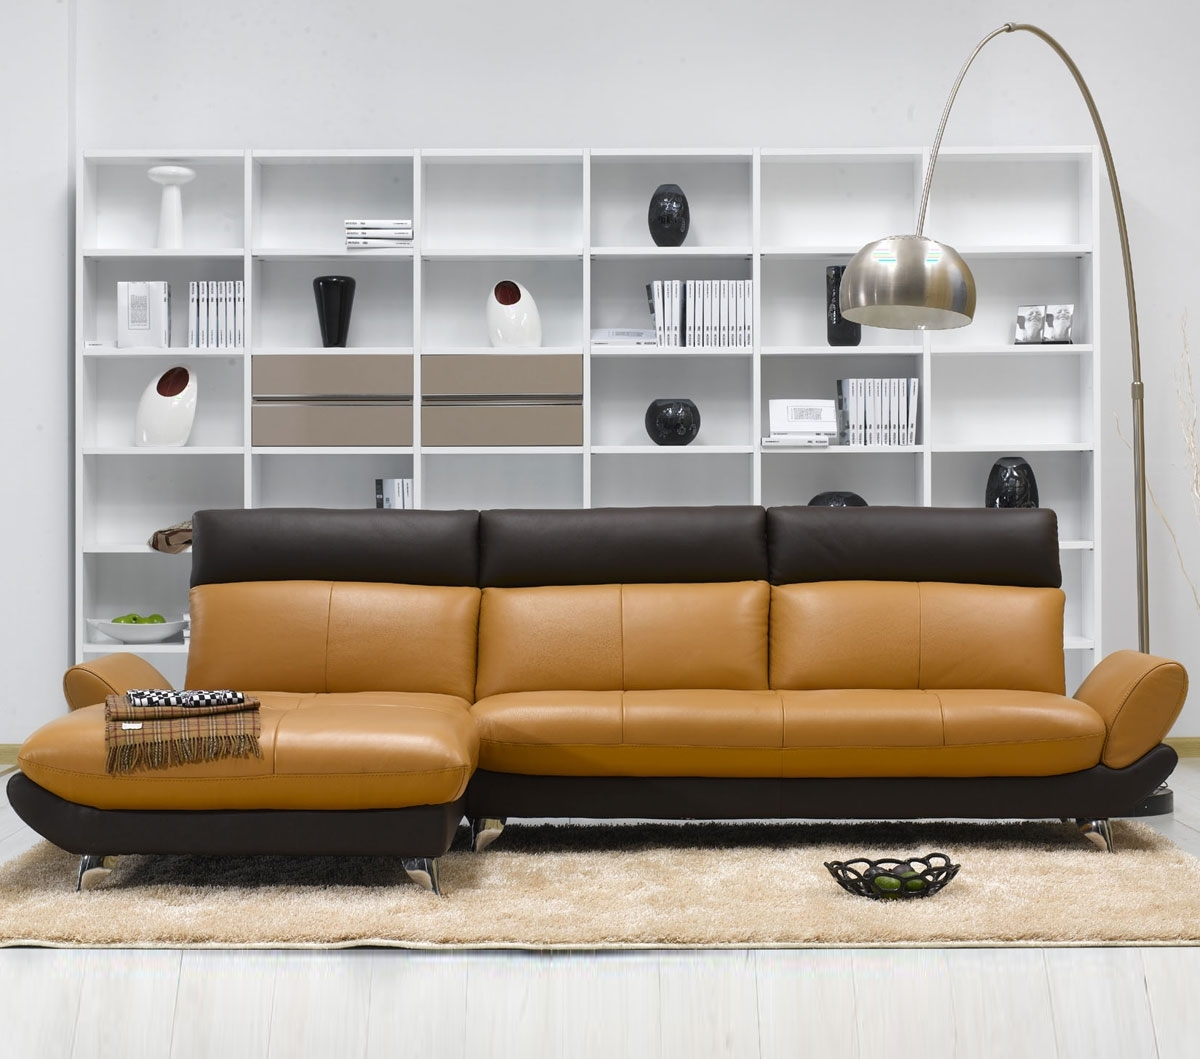 Trendy 110x90 Sectional Sofas With Furniture : Costco Sectional Sofa 899 Sectional Sofa Parts (View 10 of 20)